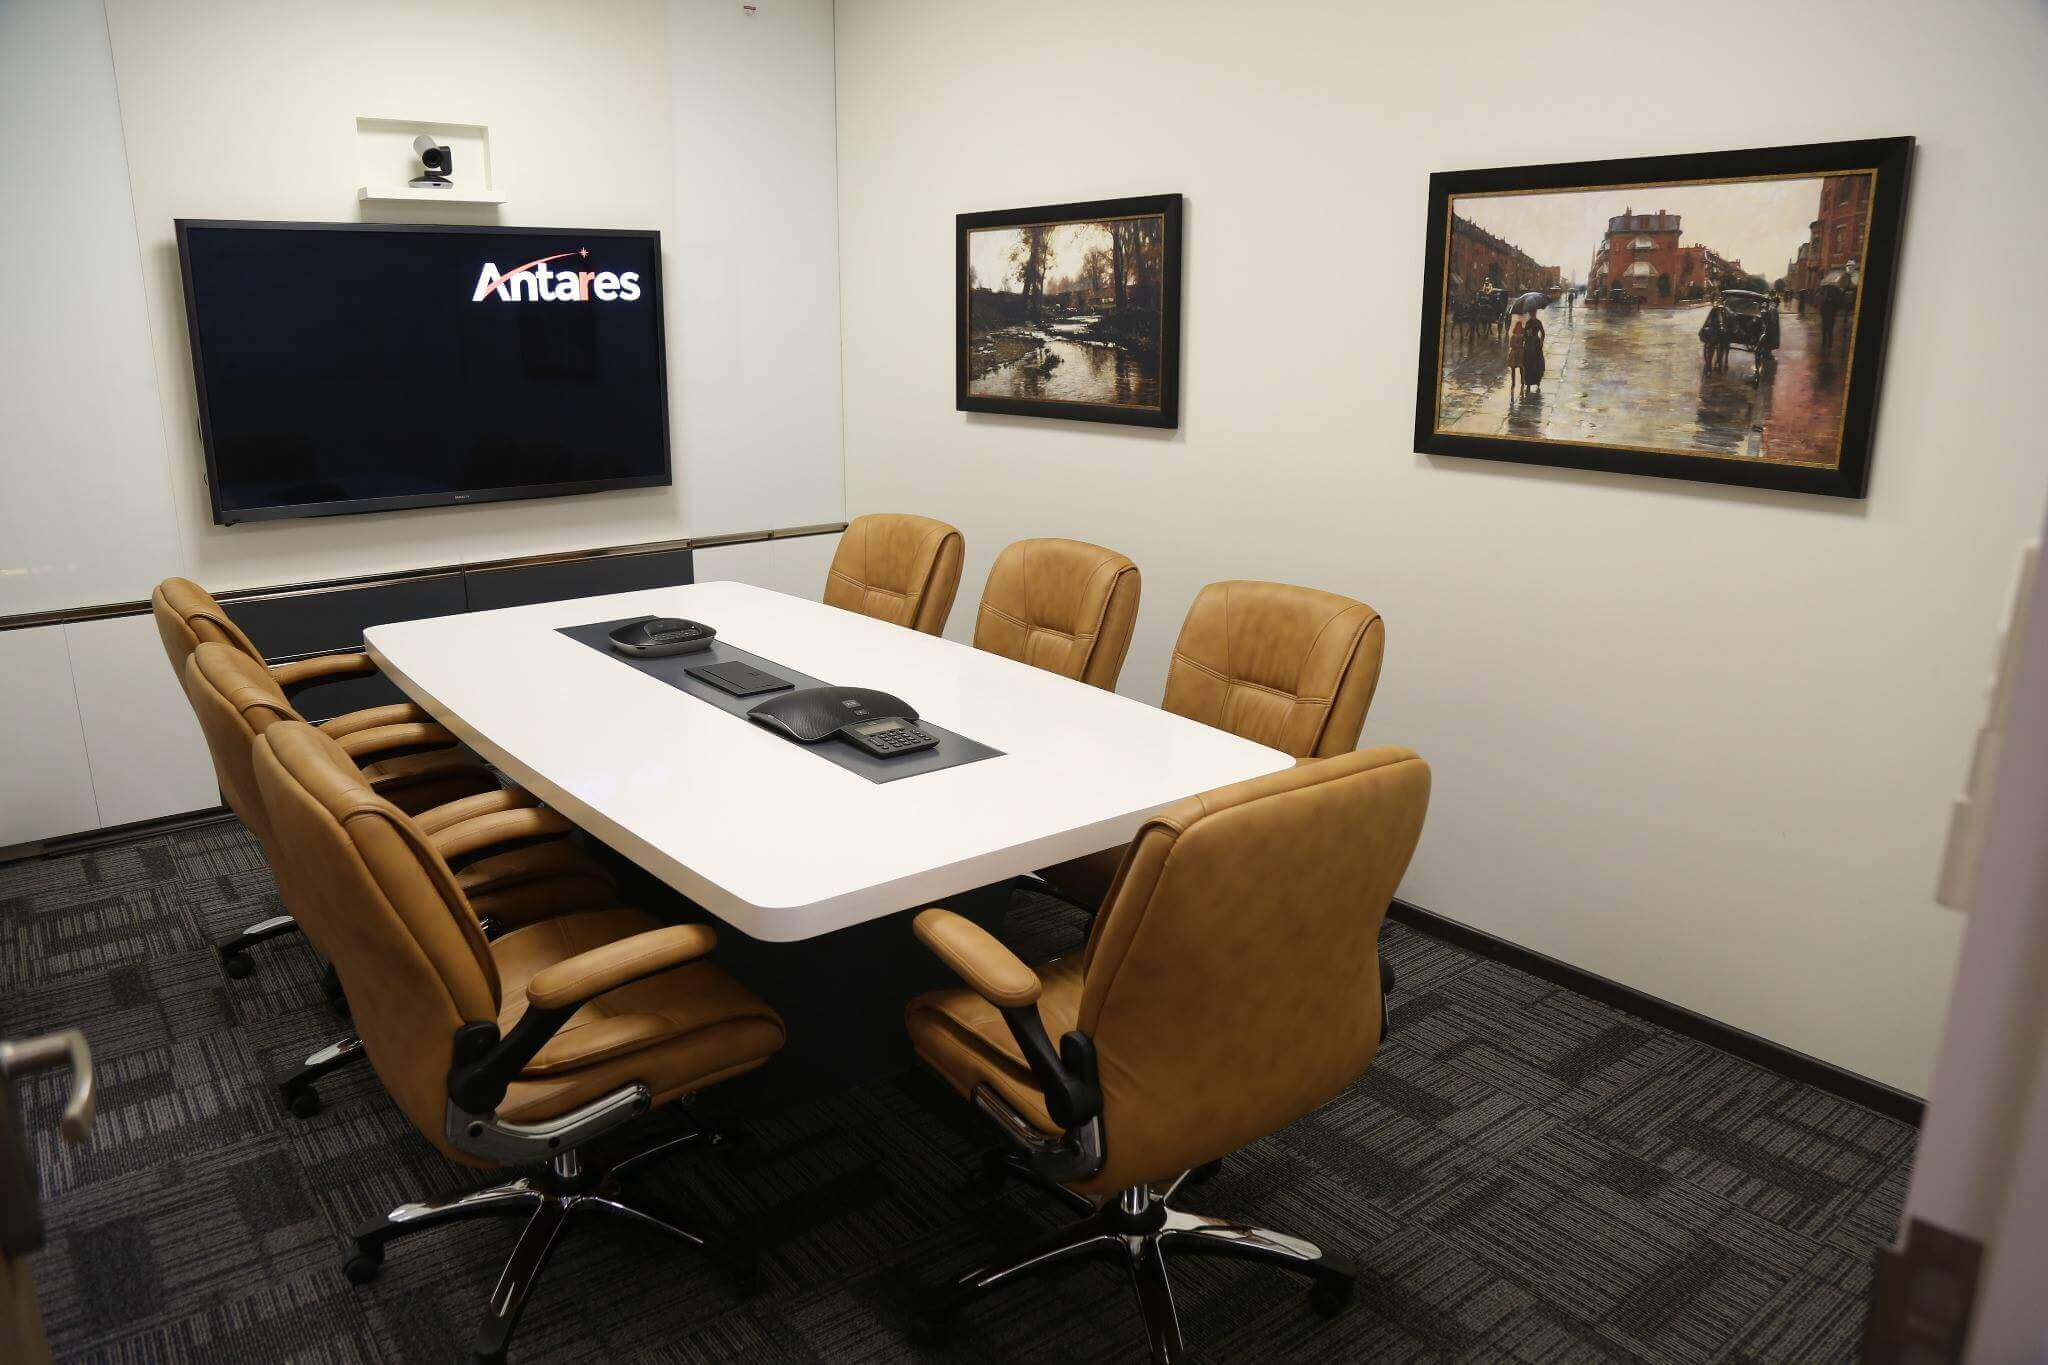 Antares Business Centre in Indore